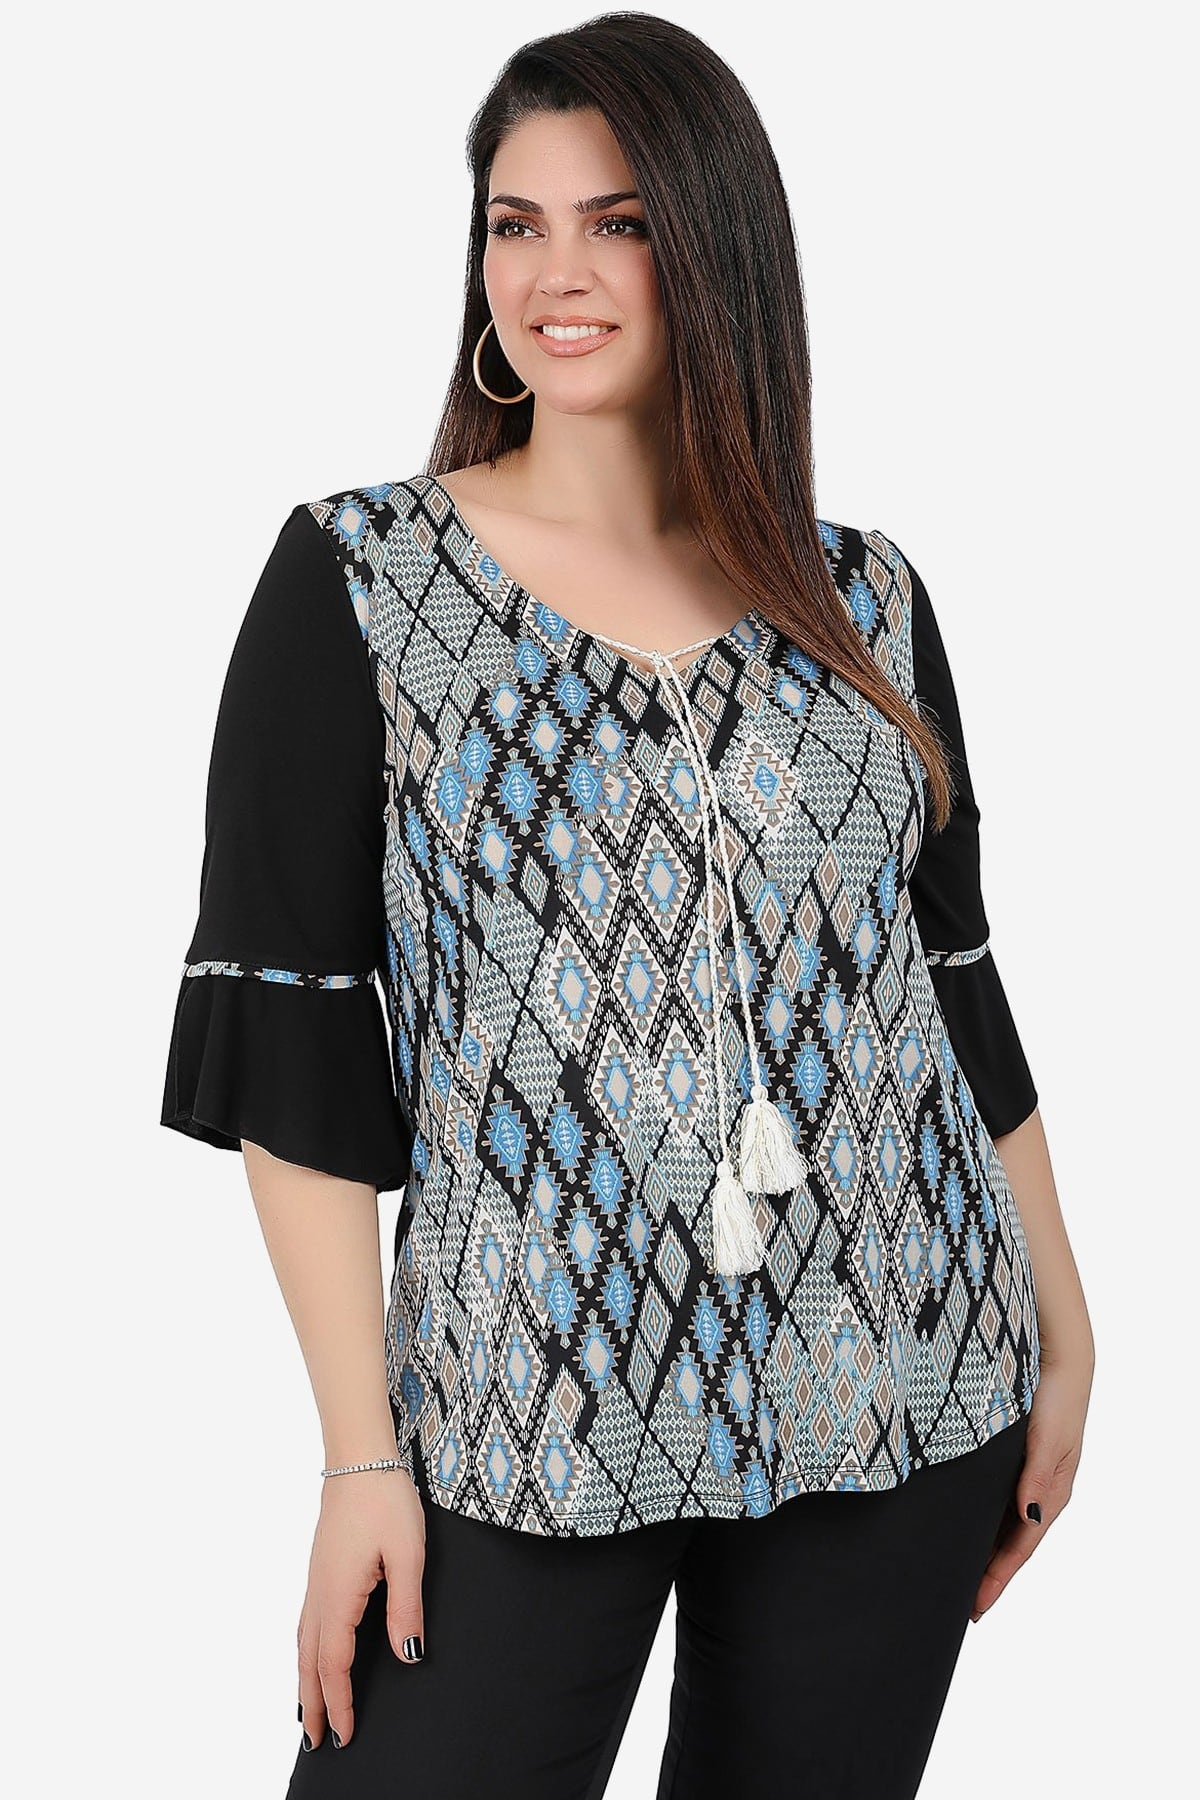 Blouse with print at the front view from jersey